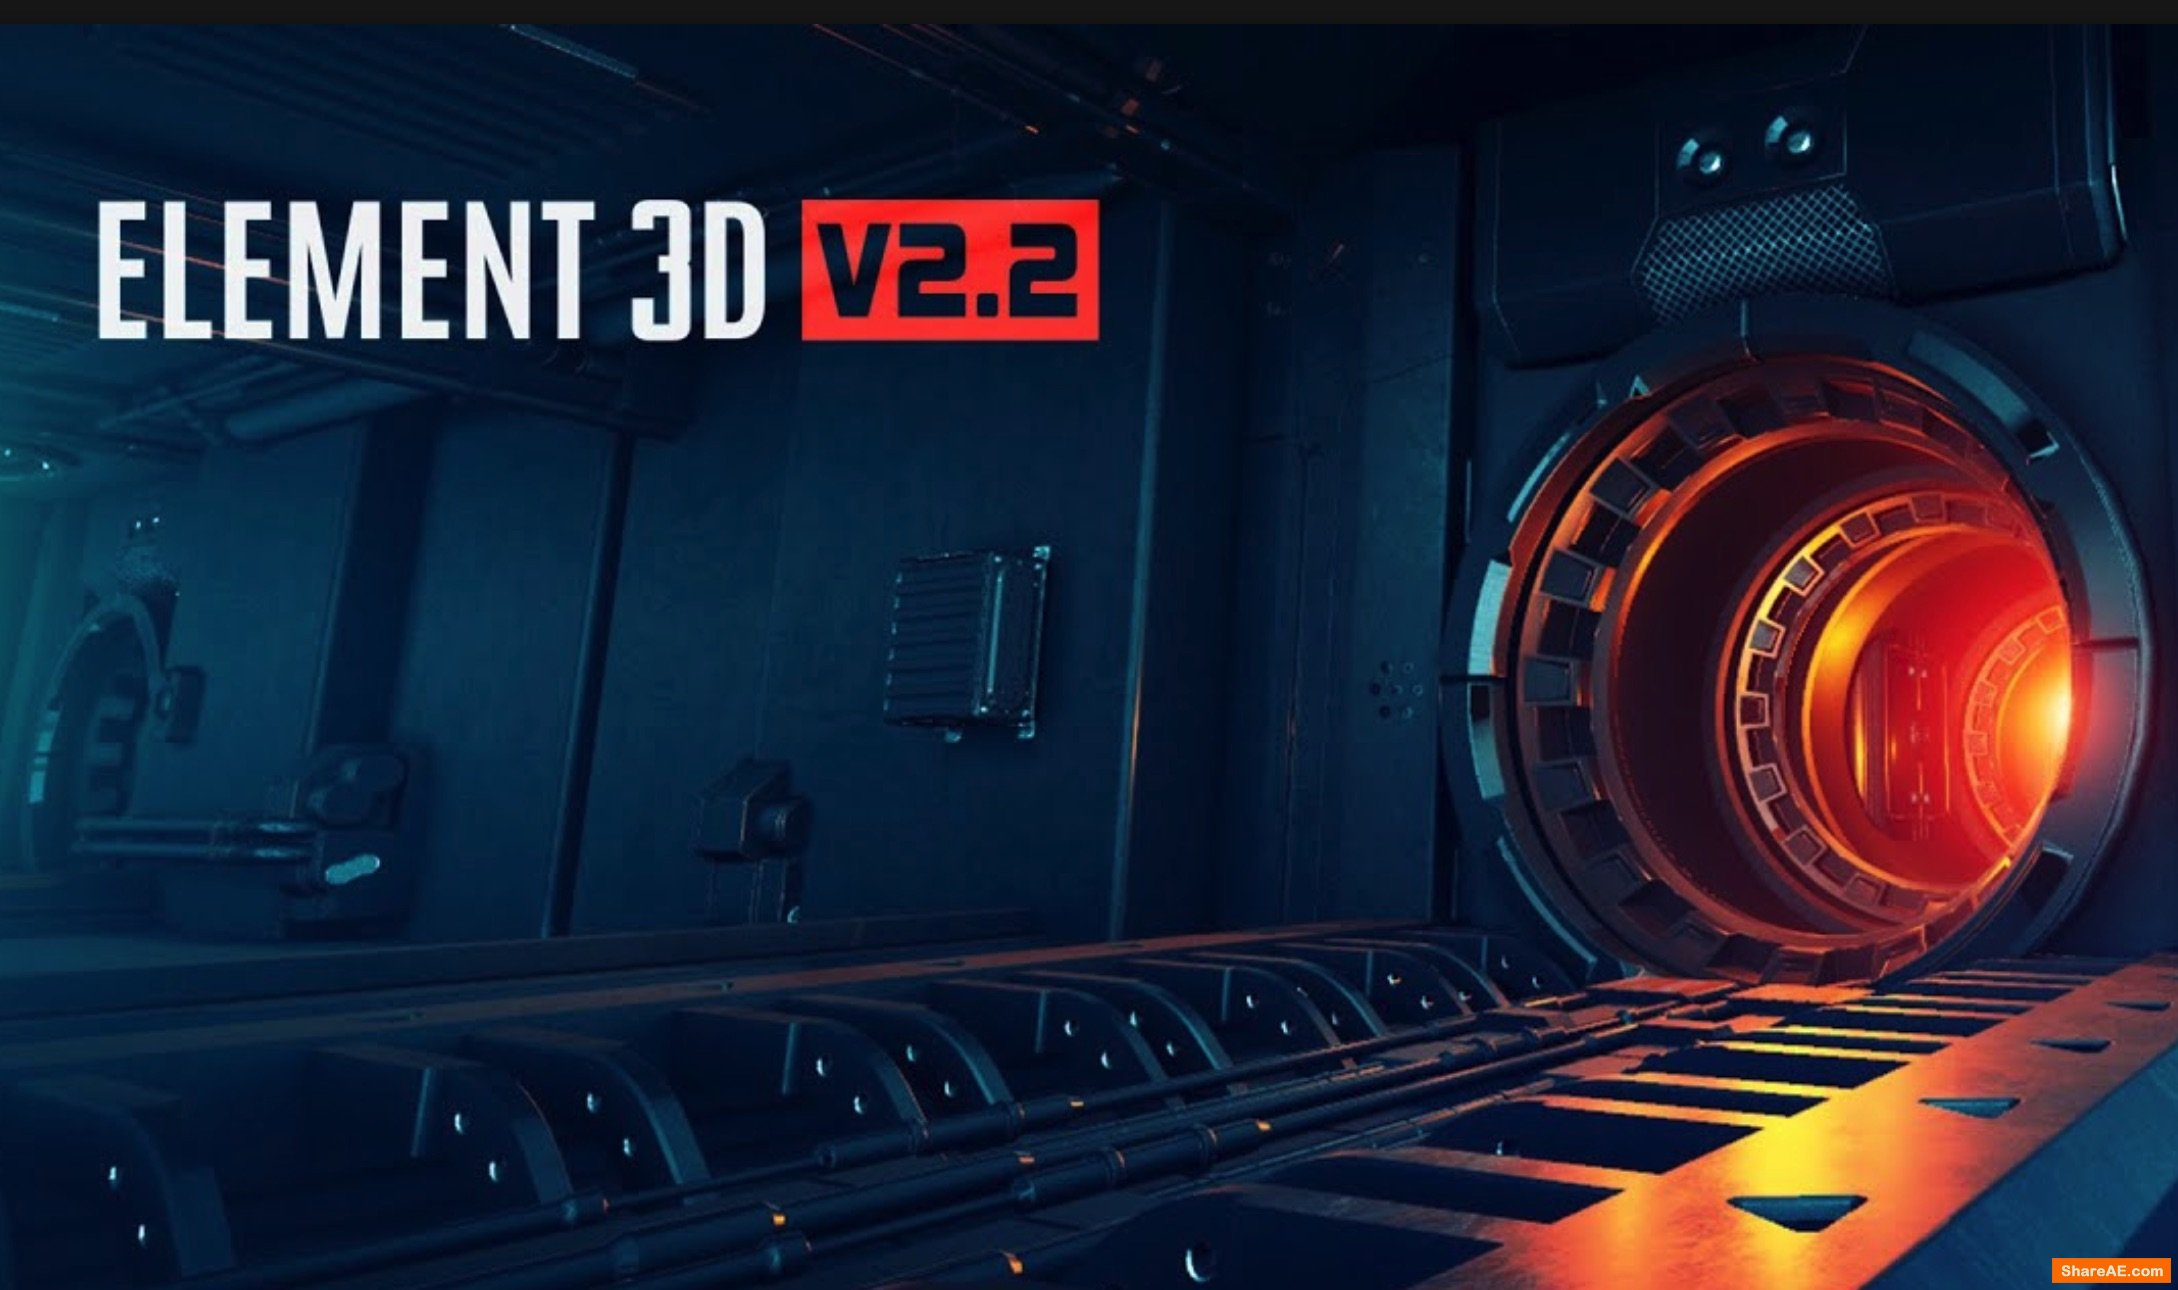 Element 3D v2.2.2 build 2168 (WIN/MAC) - Videocopilot